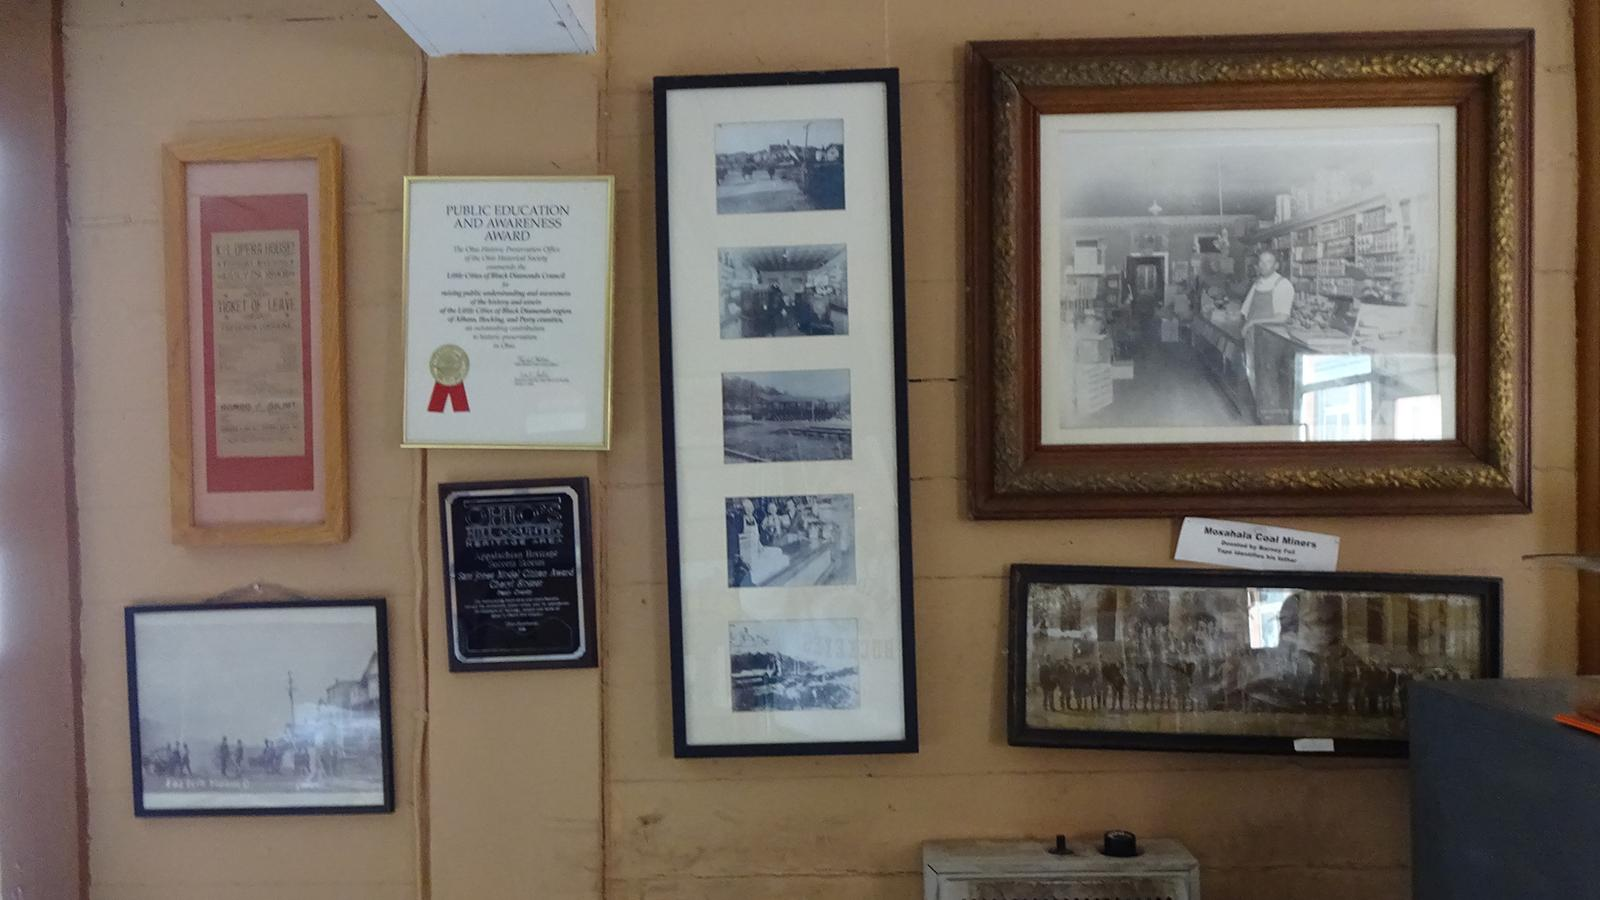 Photos and awards displayed on the wall of the Little Cities of Black Diamonds Council Office